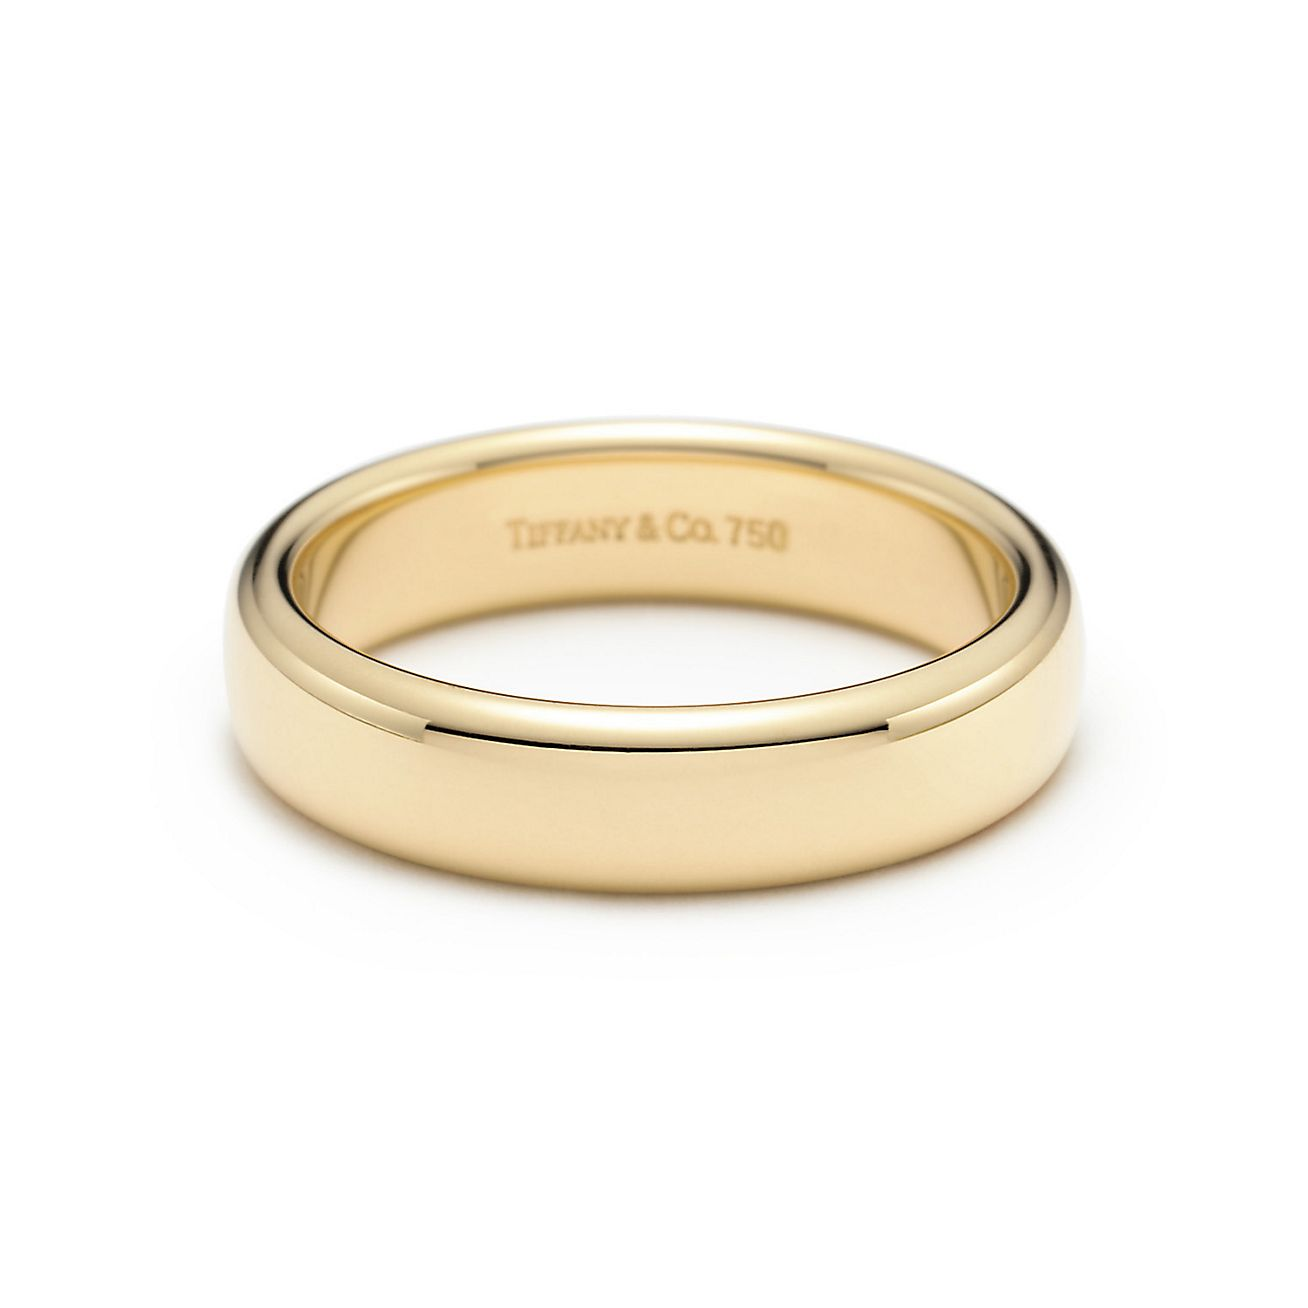 This is a graphic of Tiffany Classic™ Wedding Band Ring